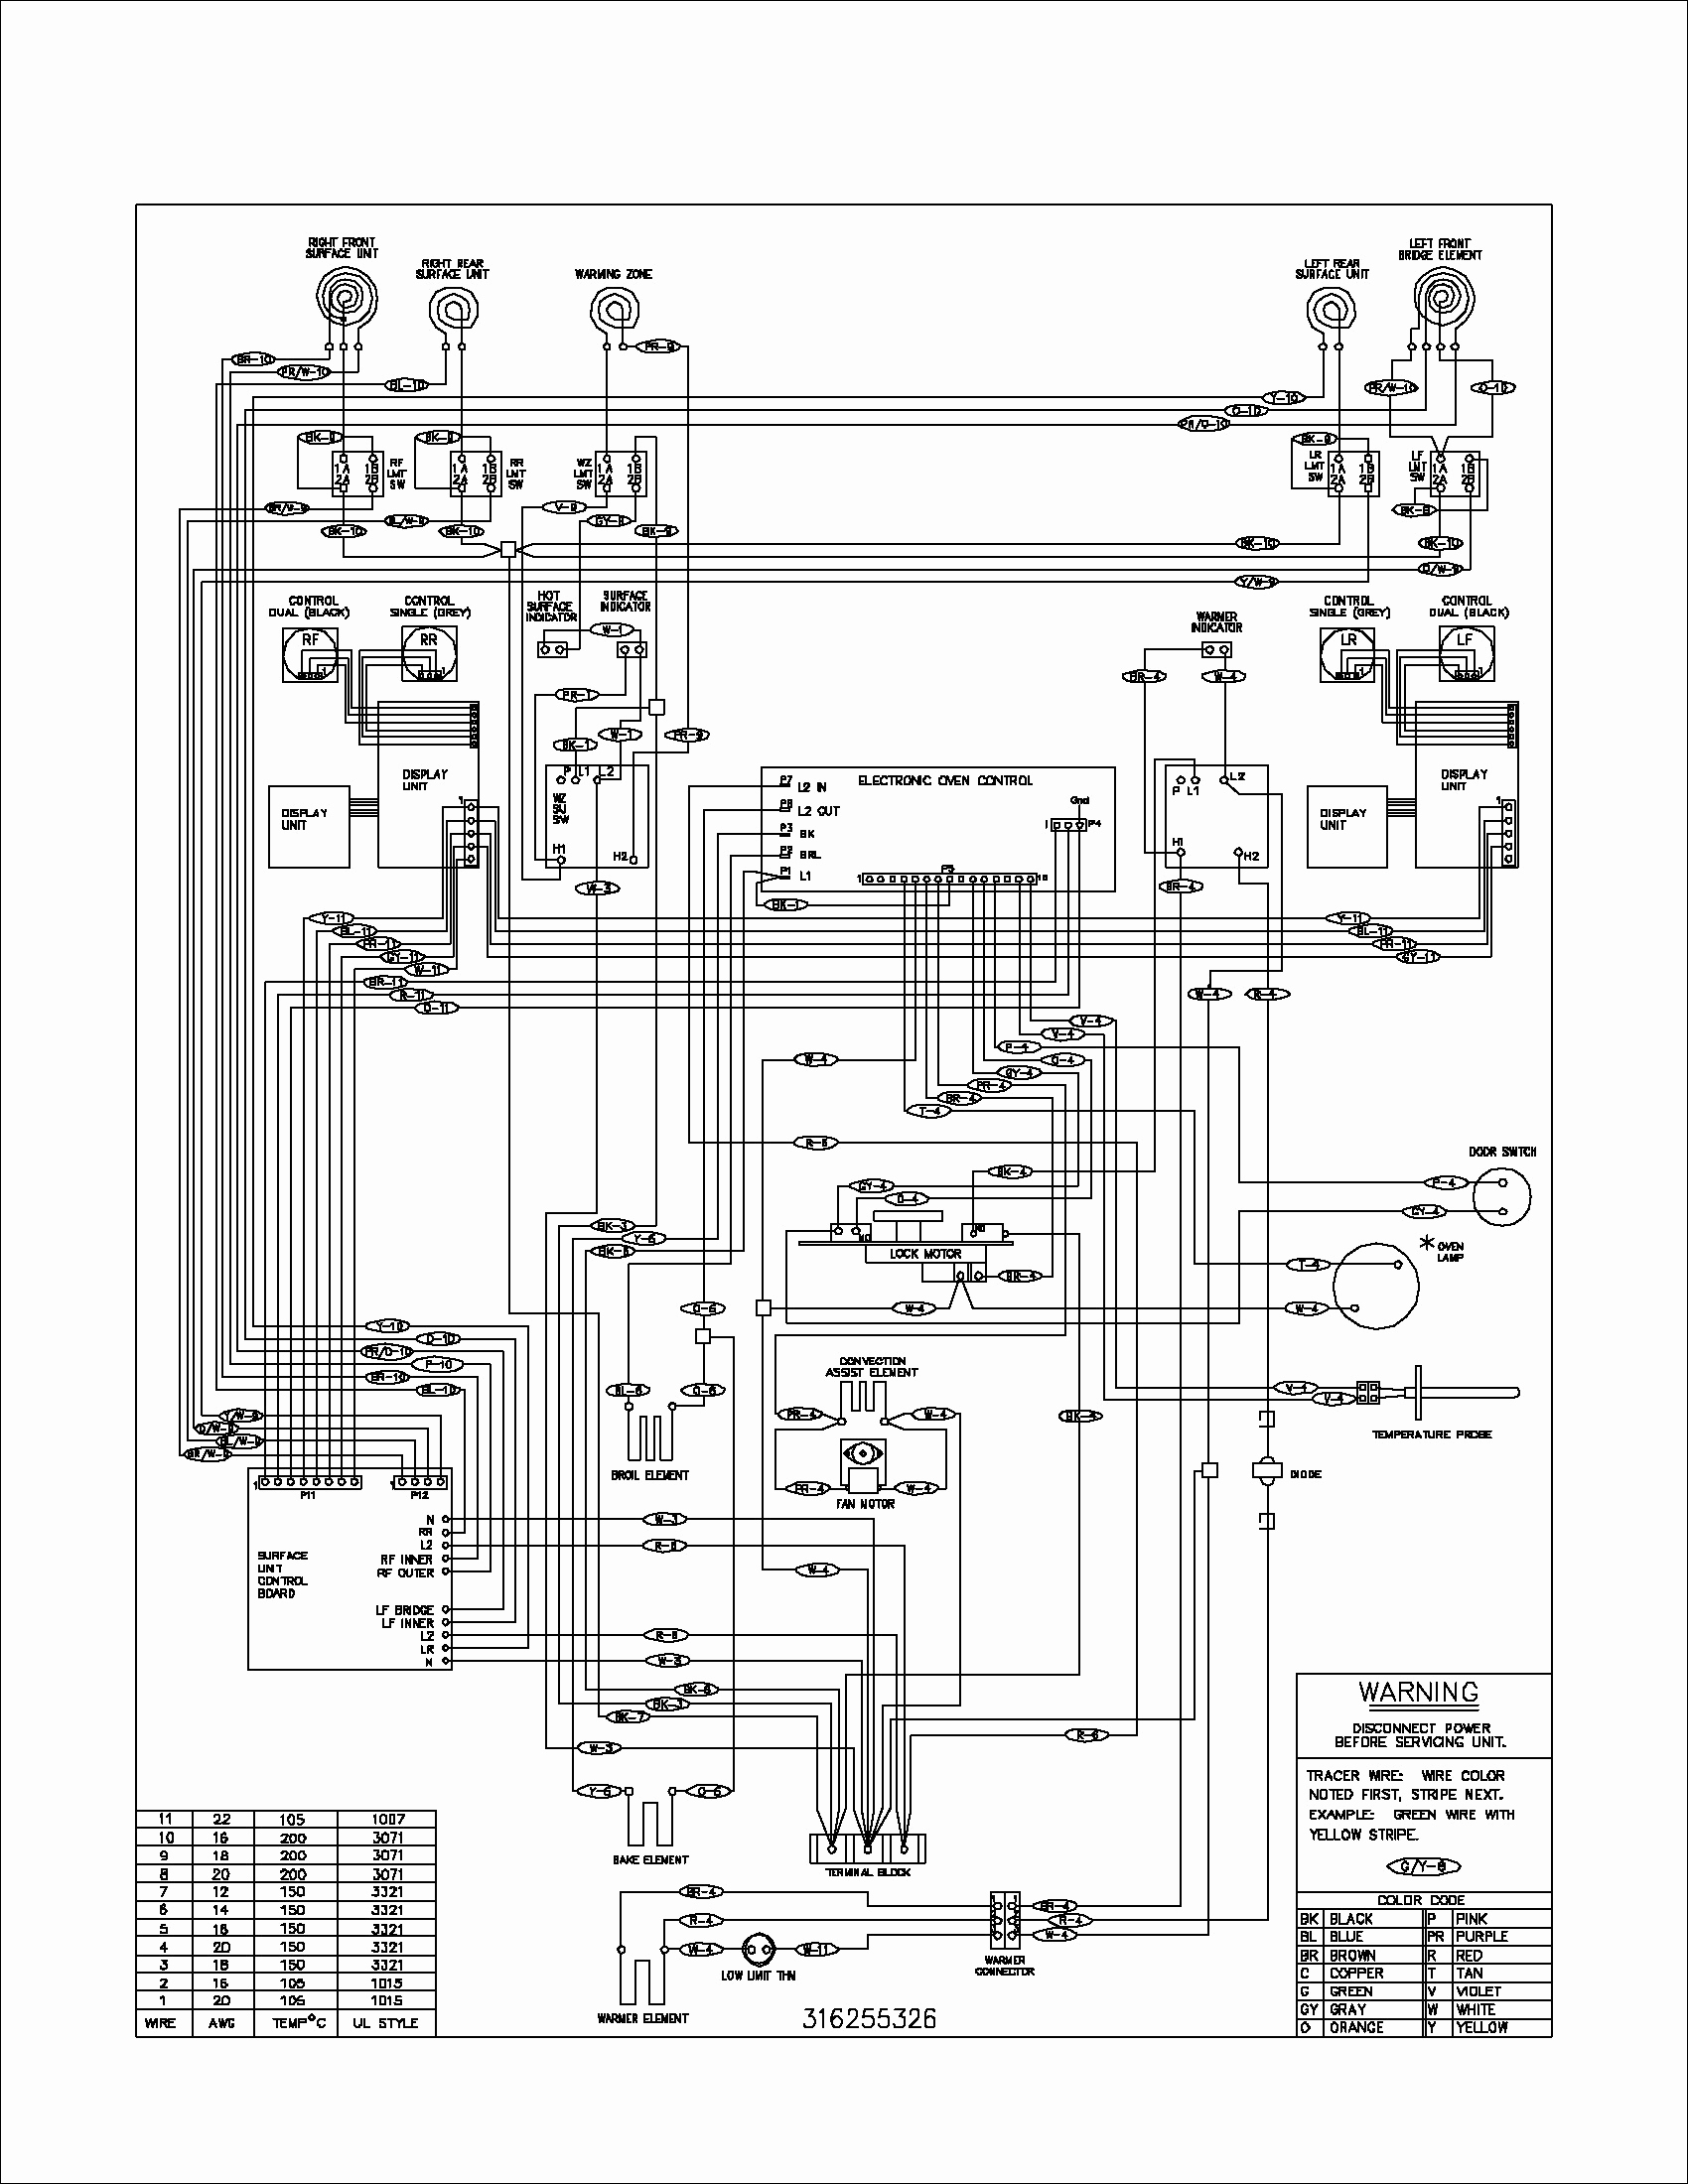 [DIAGRAM] Electric Furnace Sequencer Wiring Diagram Free